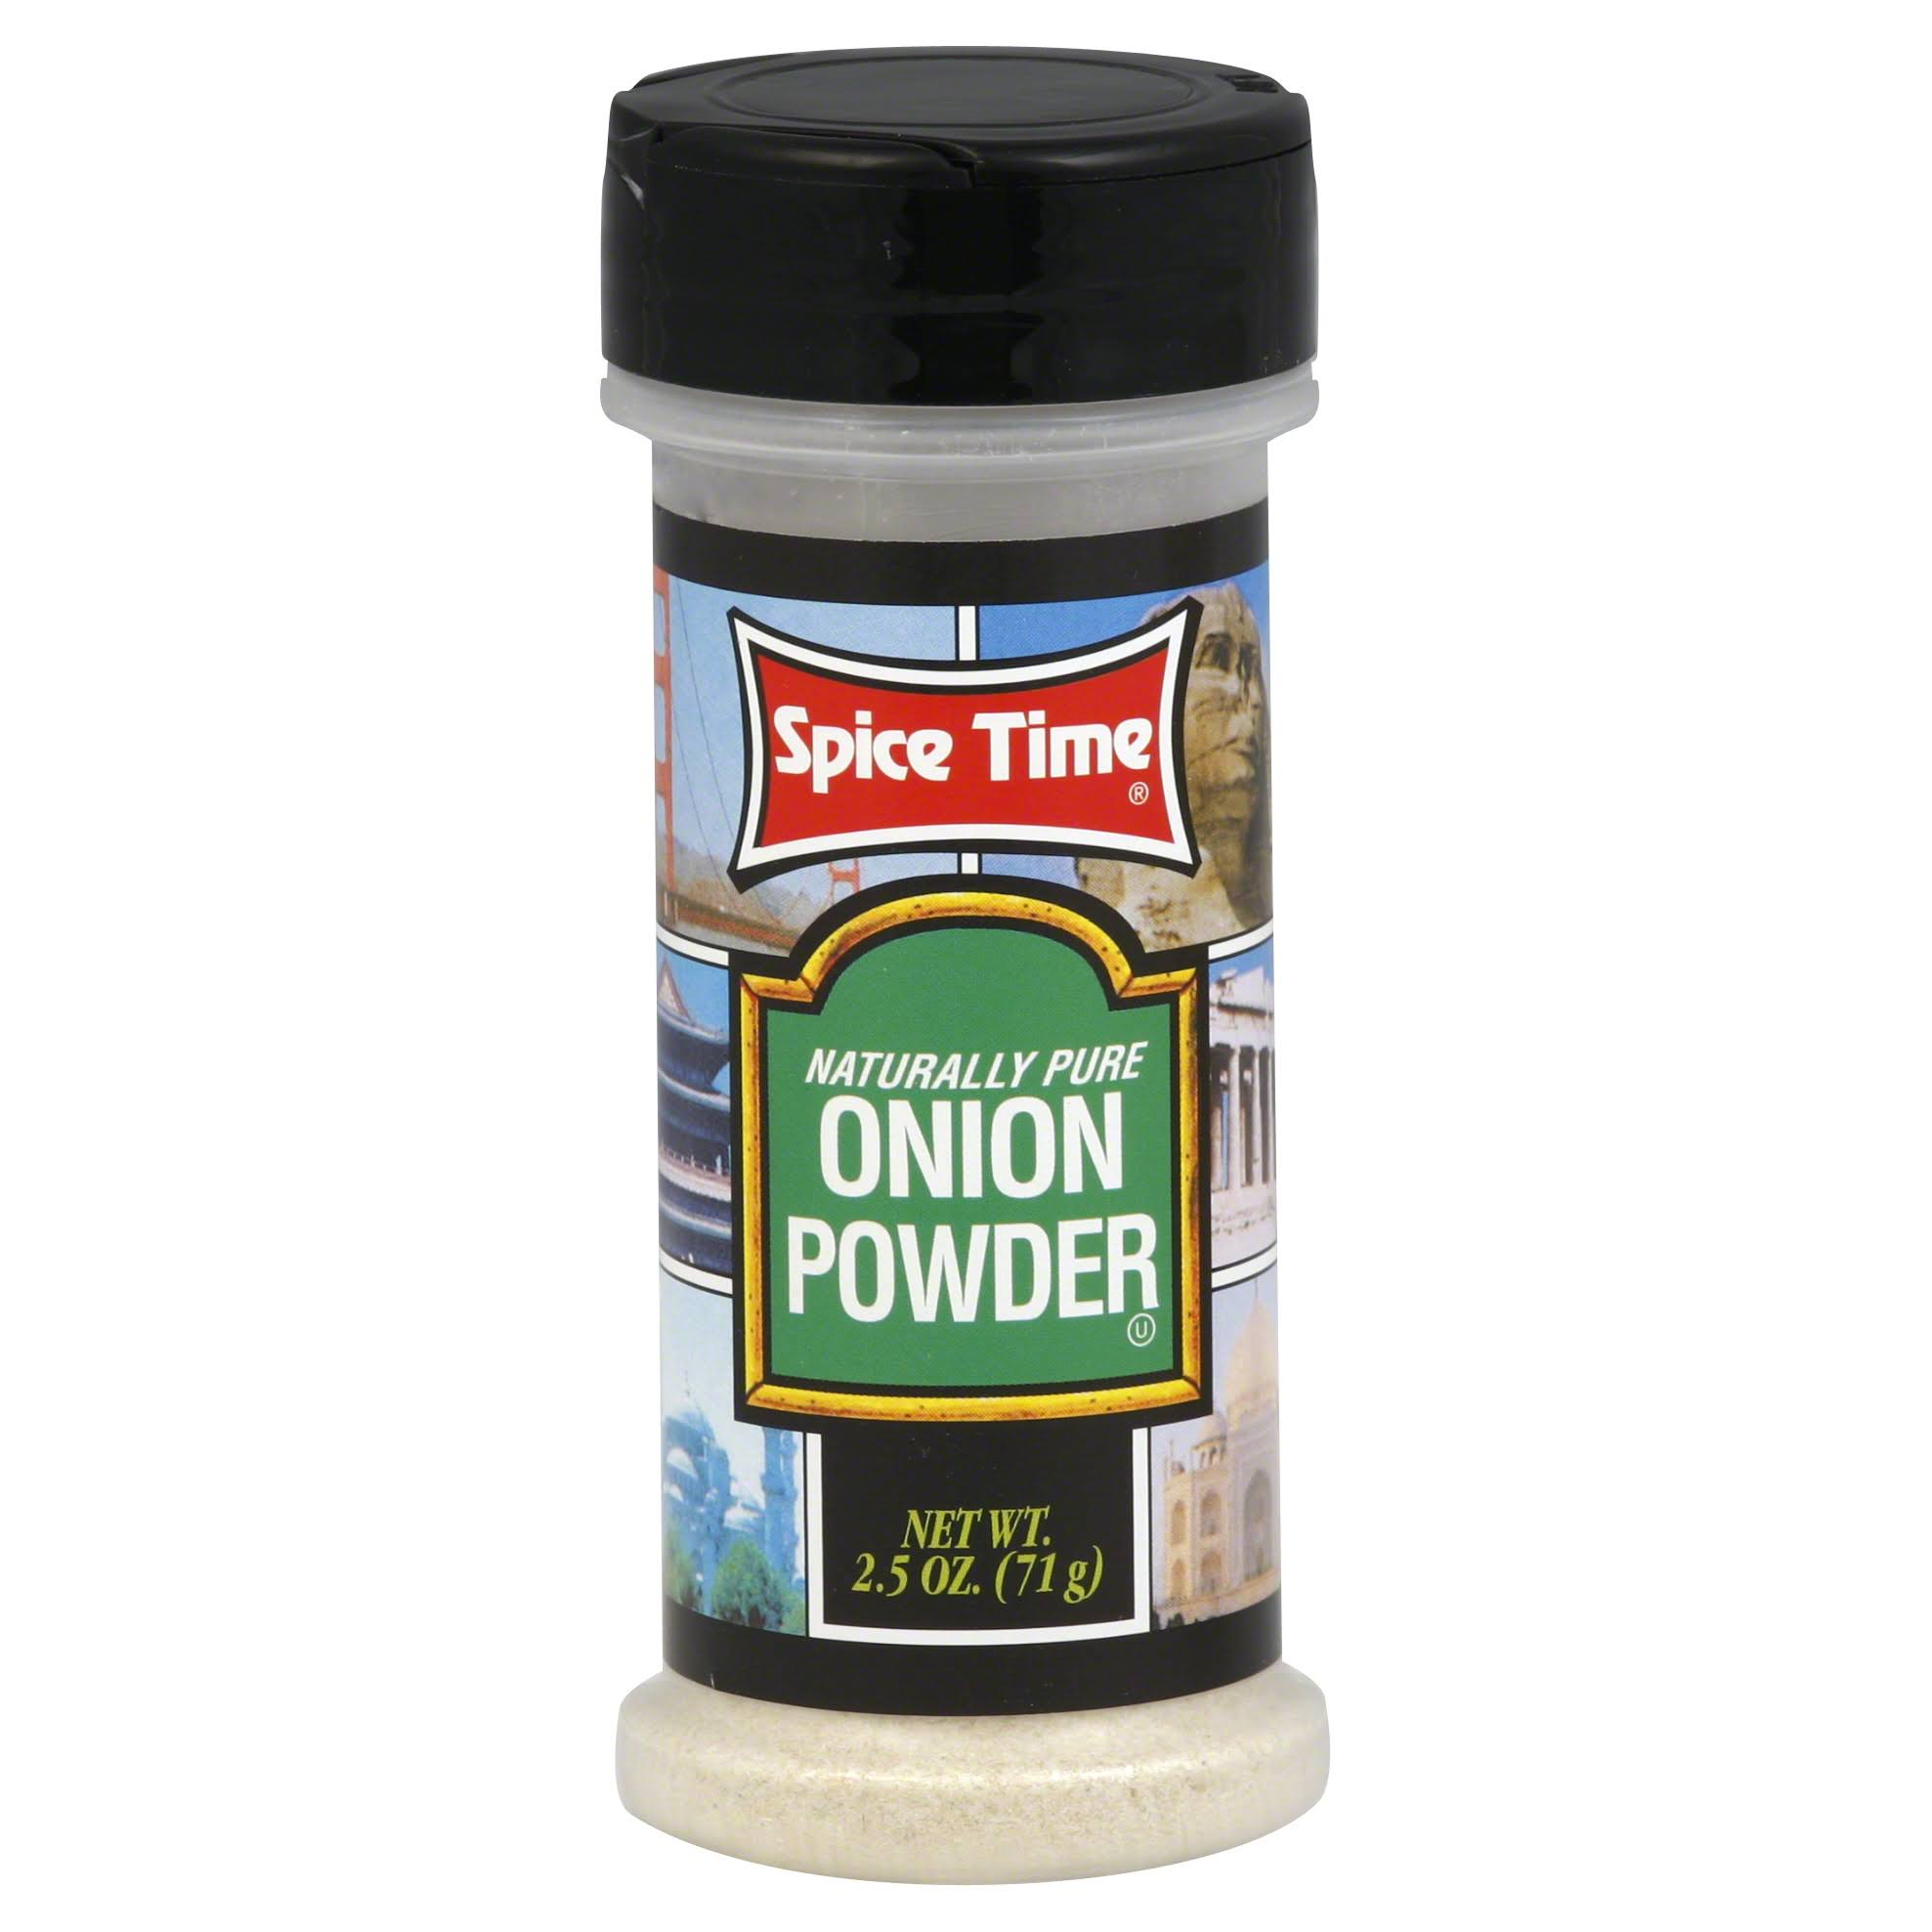 Spice Time Onion Powder - 2.5 oz